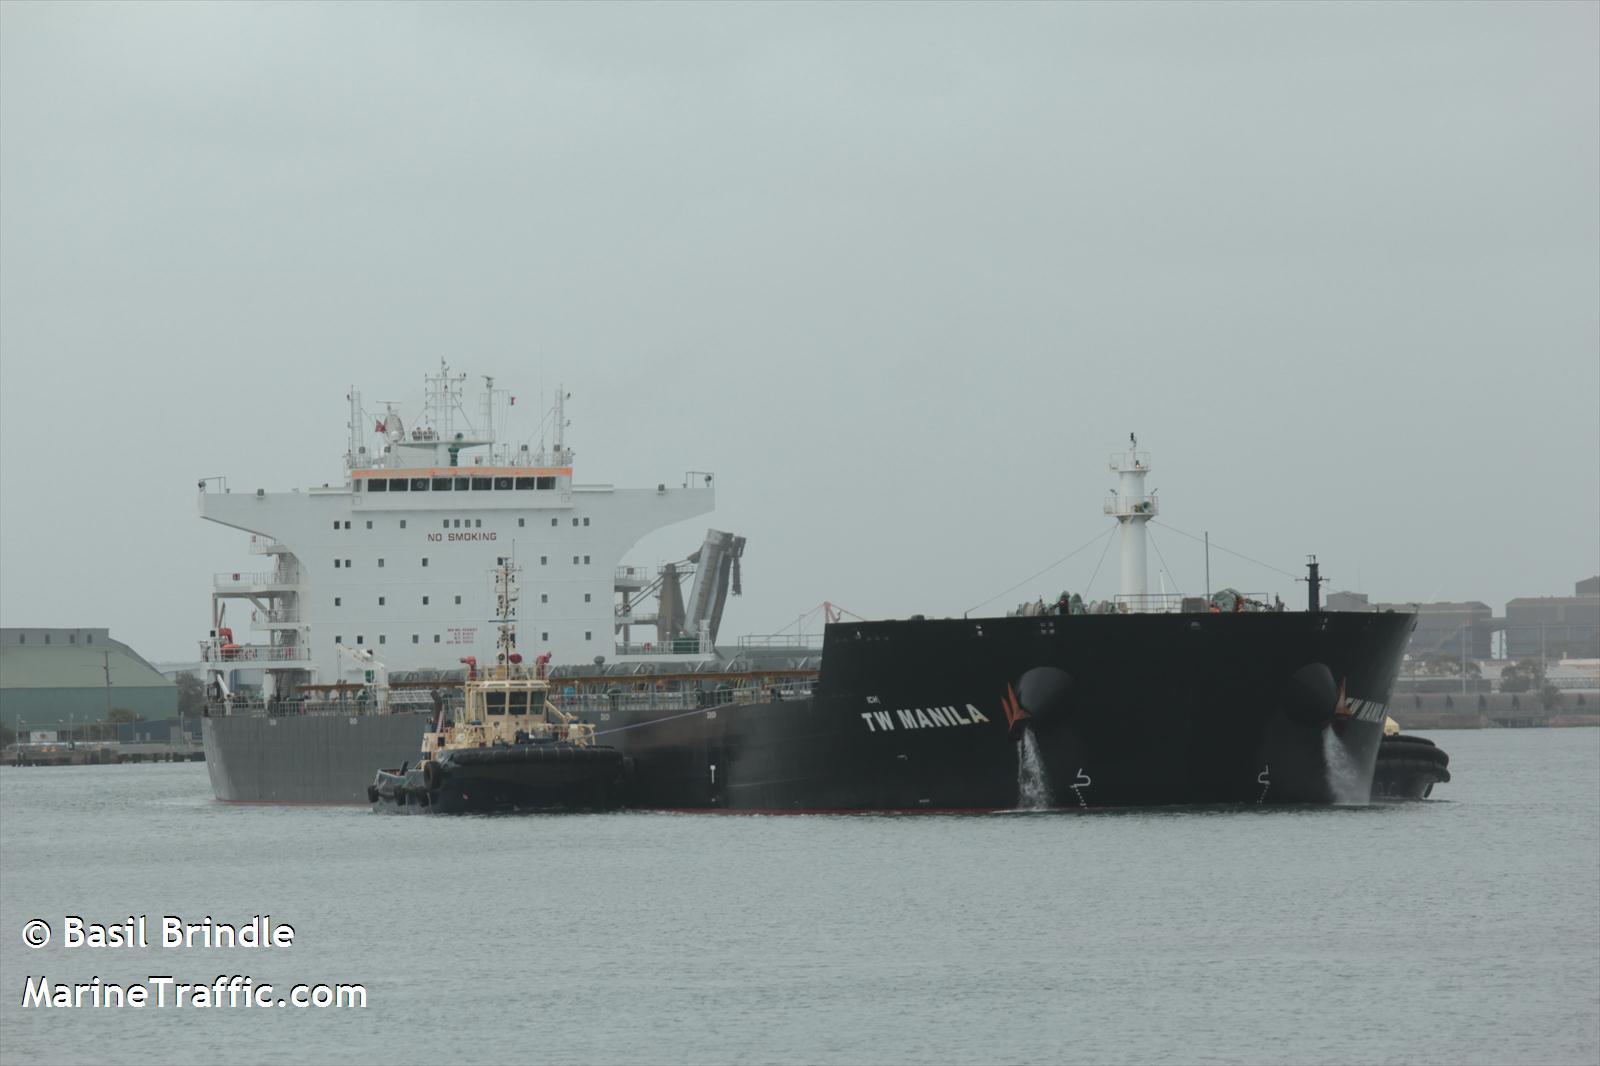 The TW Manila leaving port in Australia in 2013. (Courtesy: Basil Brindle/MarineTraffic.com)